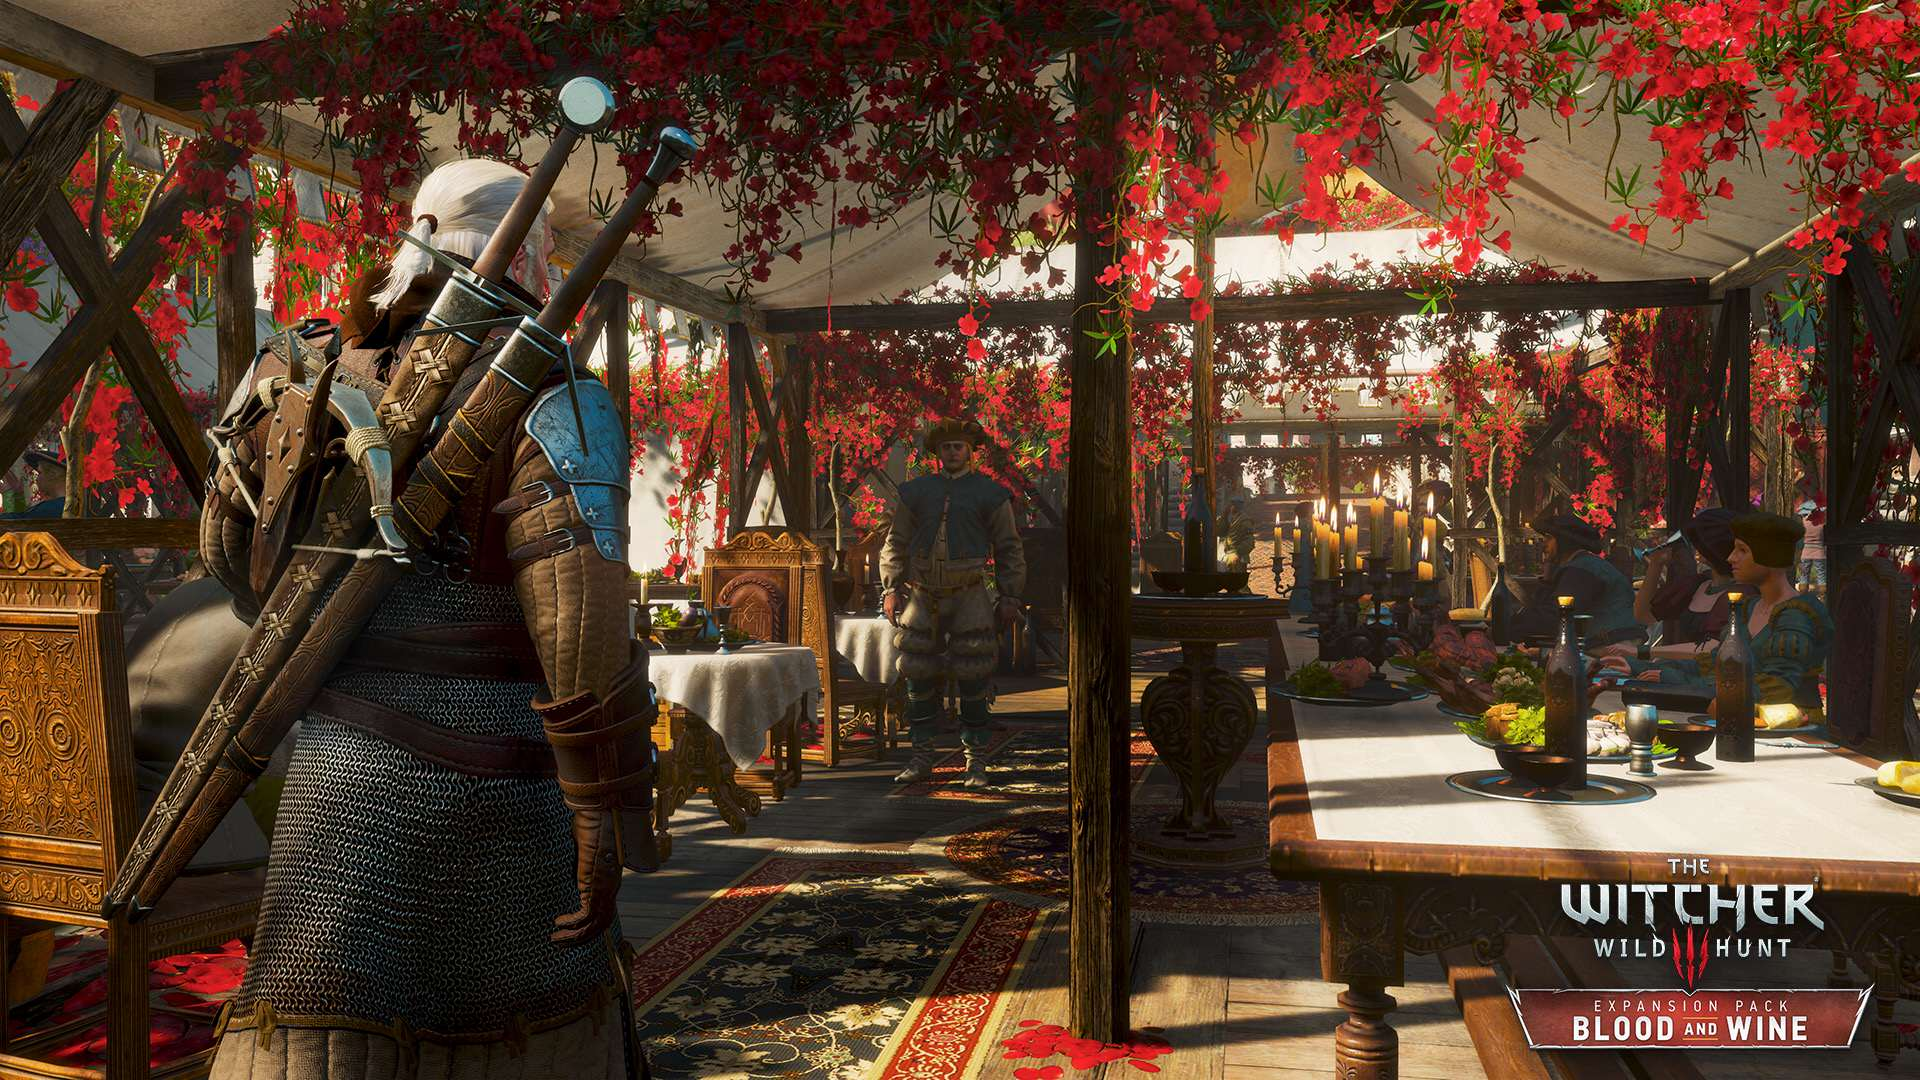 Gorgeously Gory Trailer For Witcher 3s Blood And Wine DLC Drops 3052433 the witcher 3 wild hunt blood and wine beauclair is all kinds of fancy rgb en